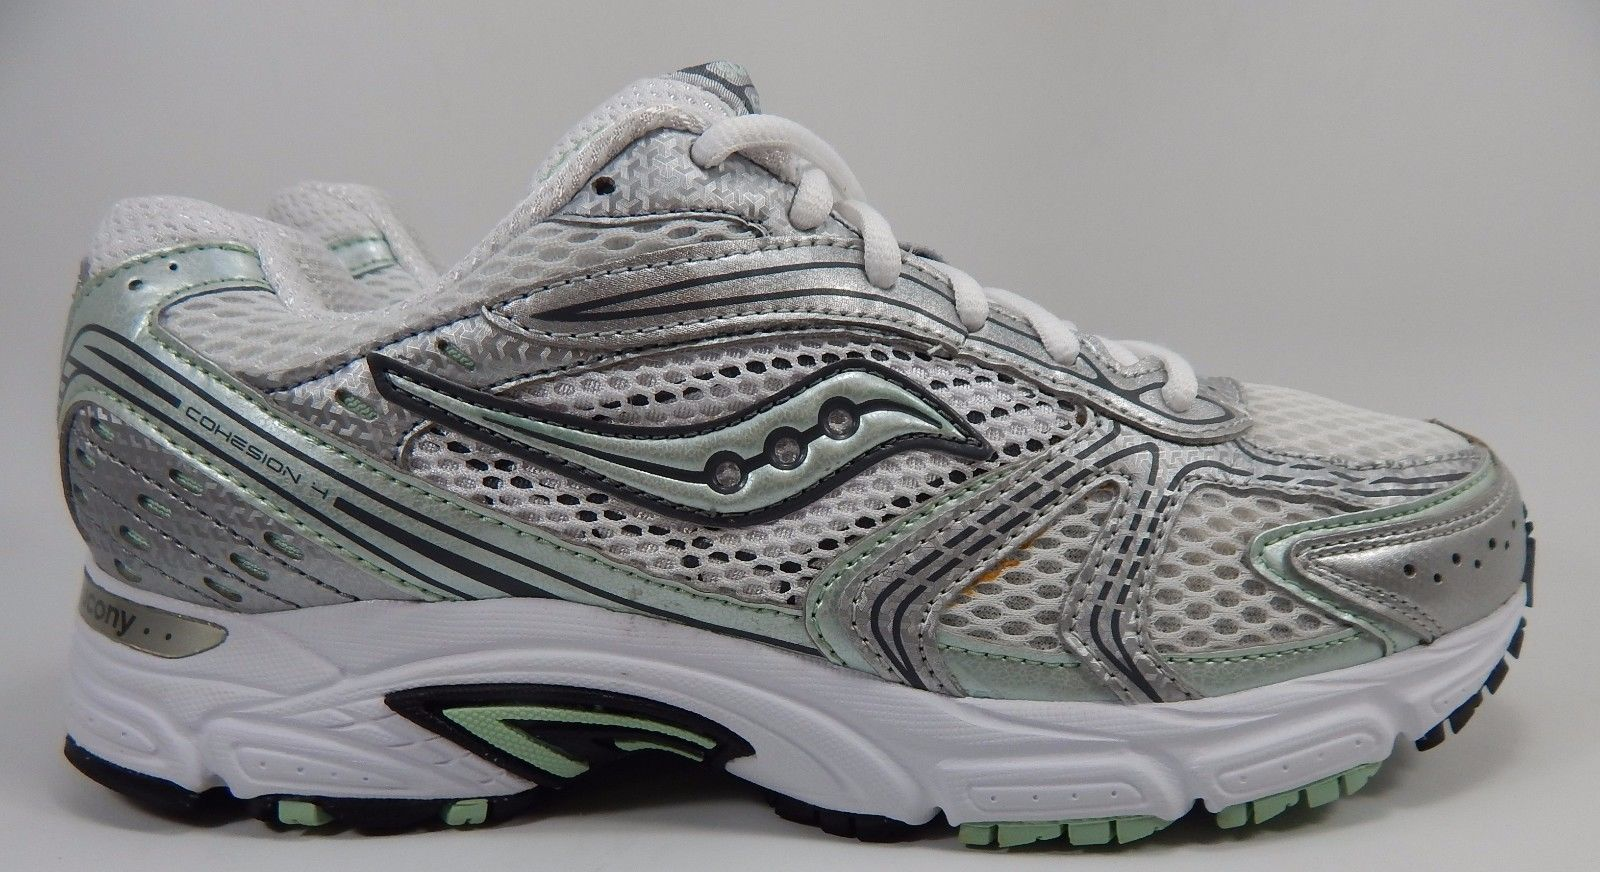 Saucony Cohesion 4 Women's Running Shoes Size US 10 M (B) EU 42 White 15083-10